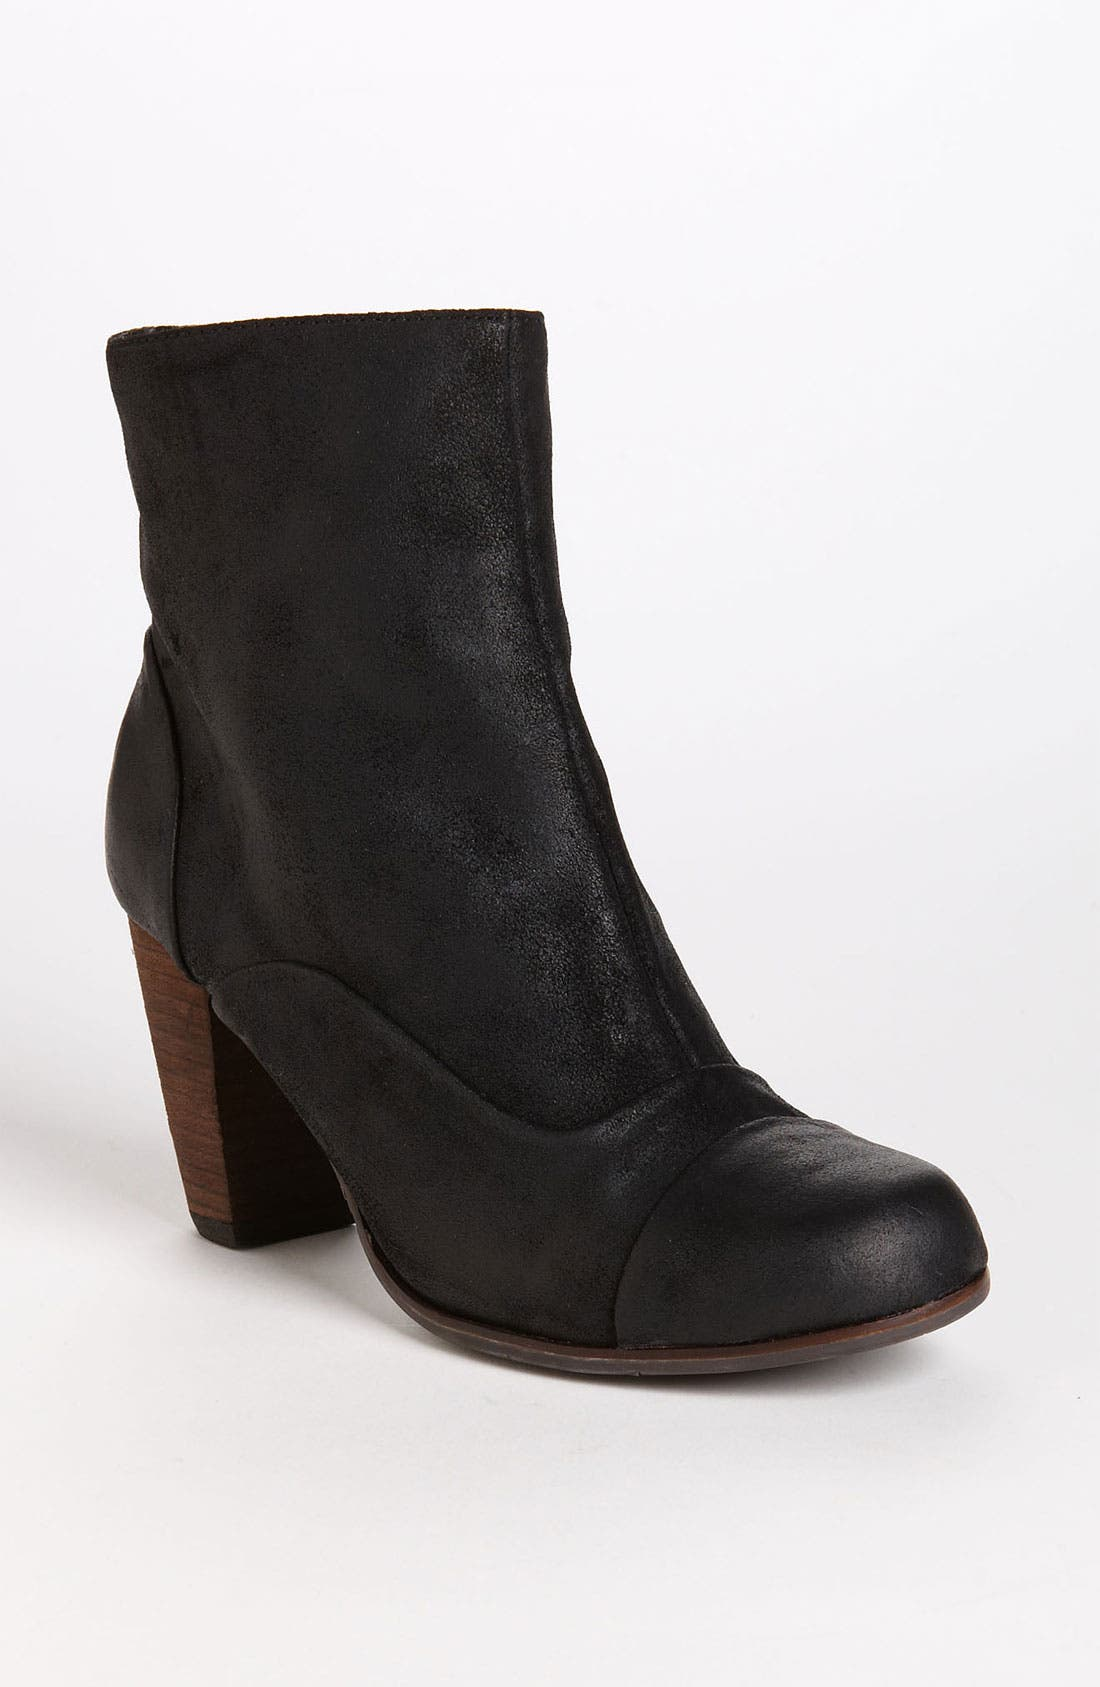 Alternate Image 1 Selected - DV by Dolce Vita 'Nuri' Boot (Online Only)